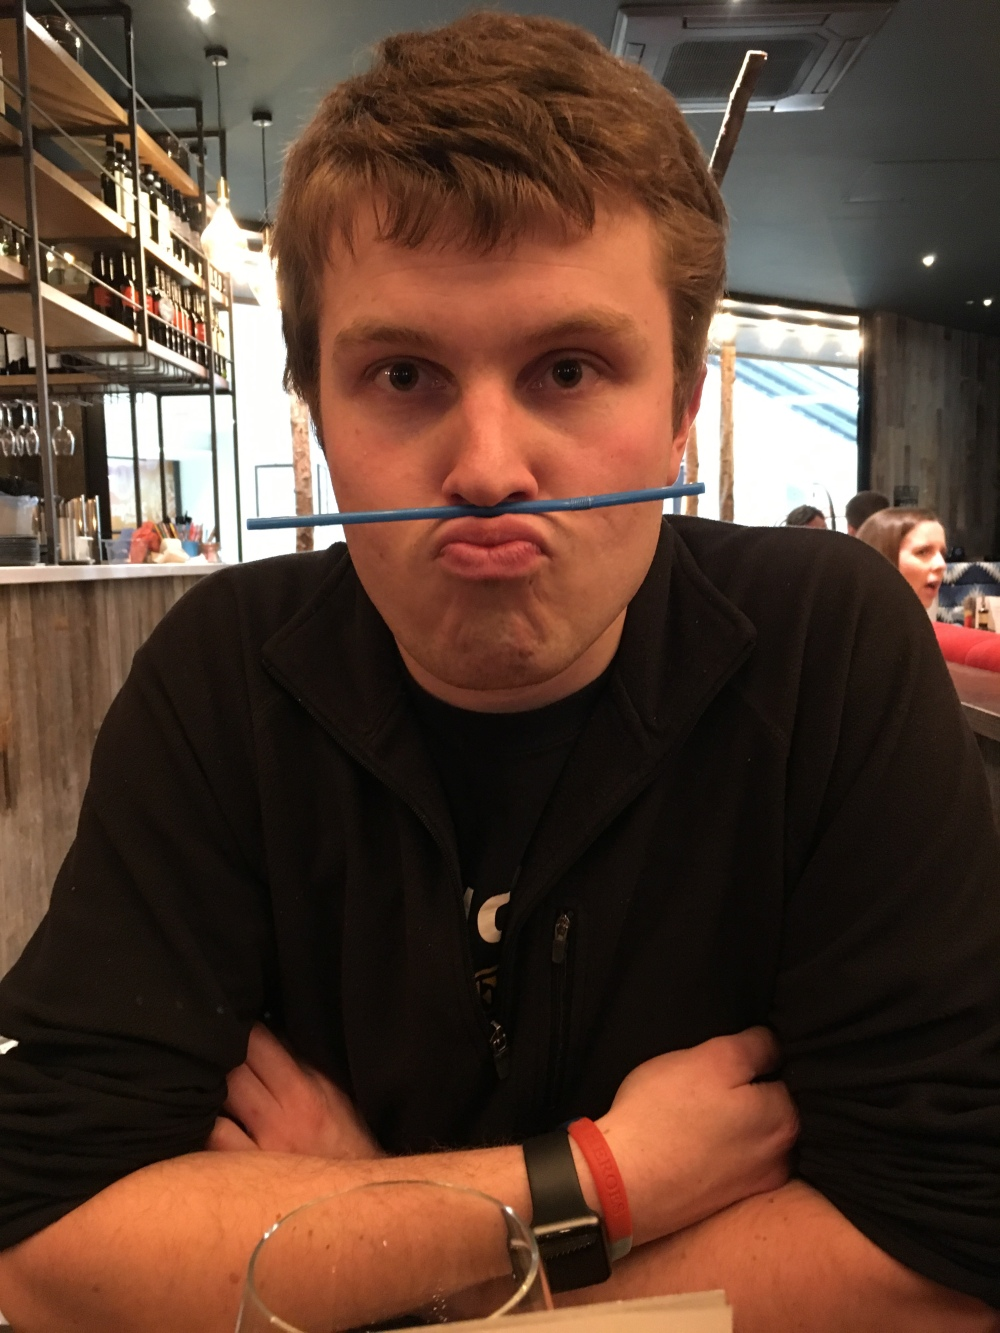 A photo of James a 23 year old with slightly wavy short brown hair. He has his arms crossed and is wearing a black jumper. He is pursing his lips pushing them out and up to hold a straw between his lips and nose. In the background you see other restaurant customers and part of the bar.